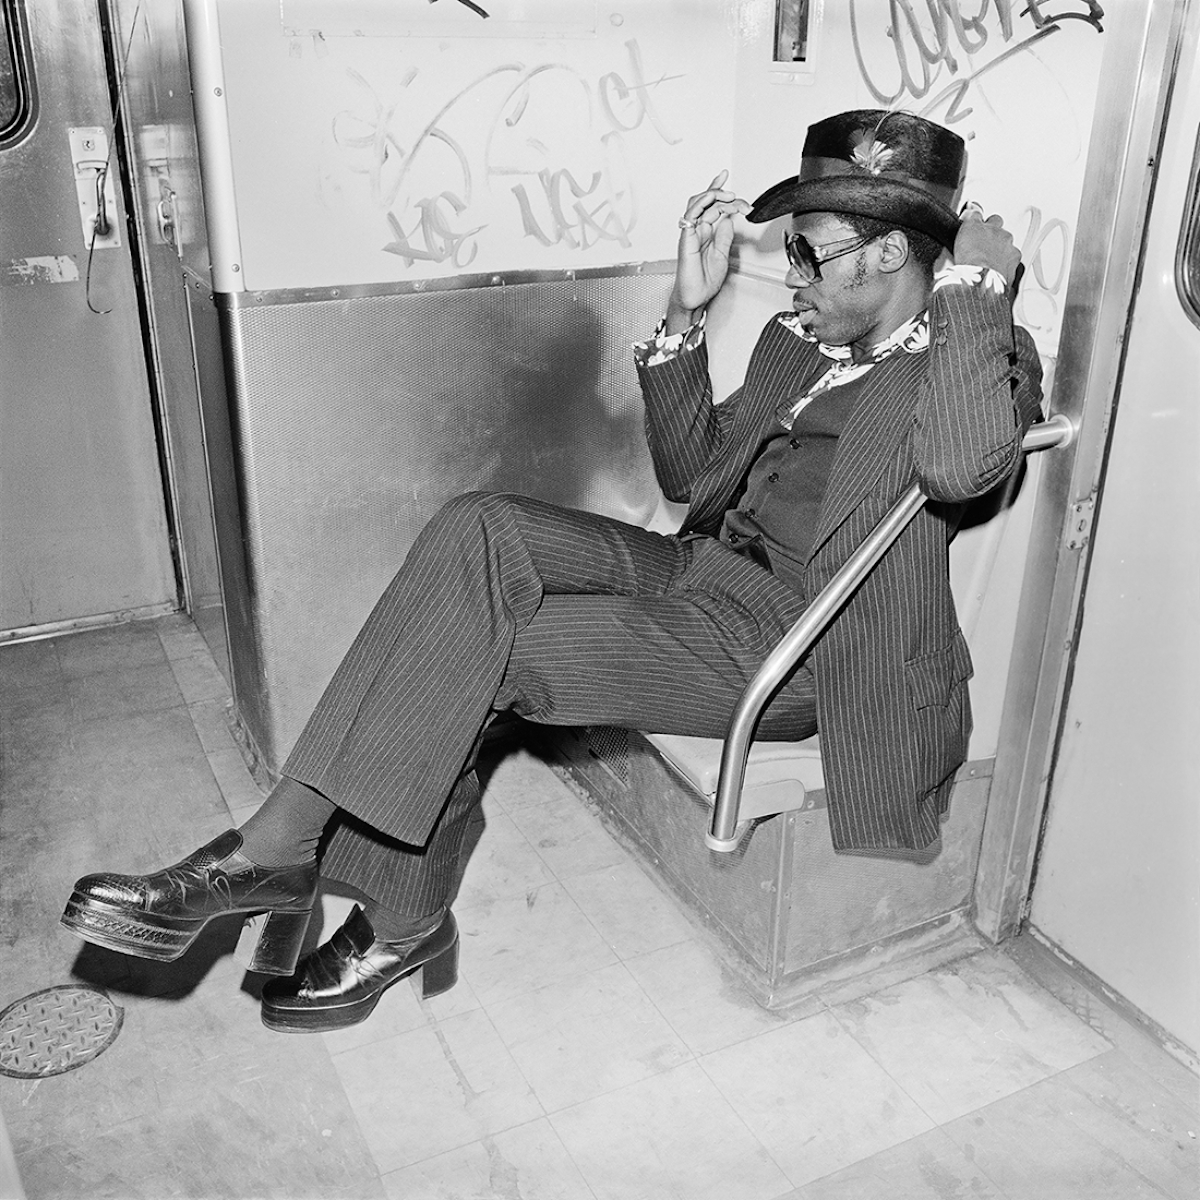 Jive Guy on Williamsburg Subway, Brooklyn NY, March 1978